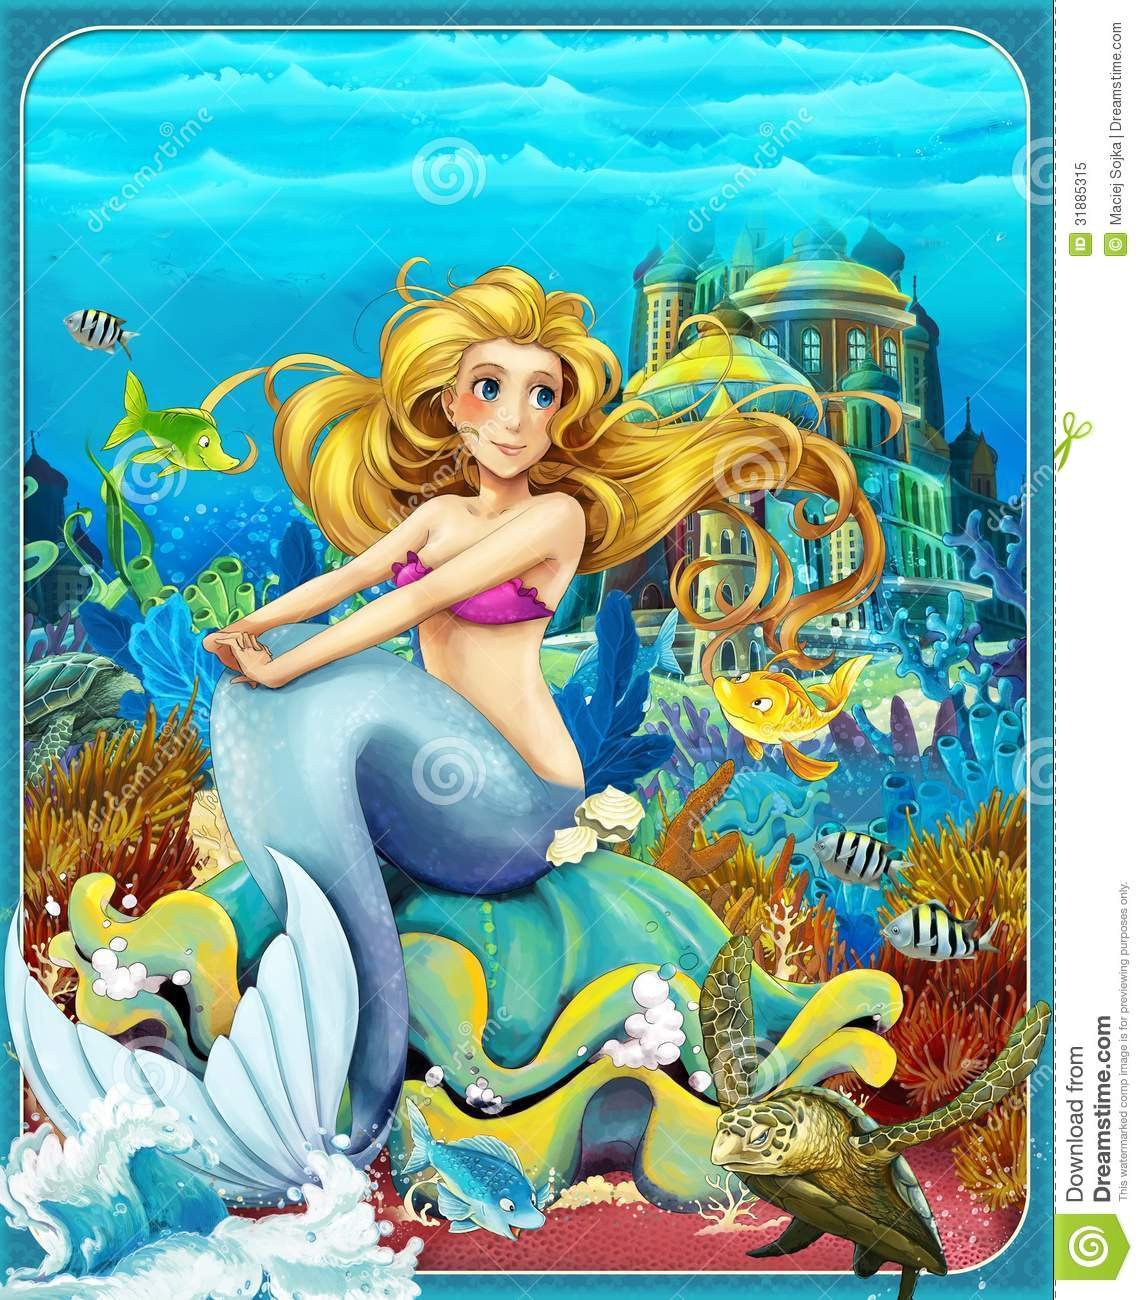 the little mermaid the princesses castles knights